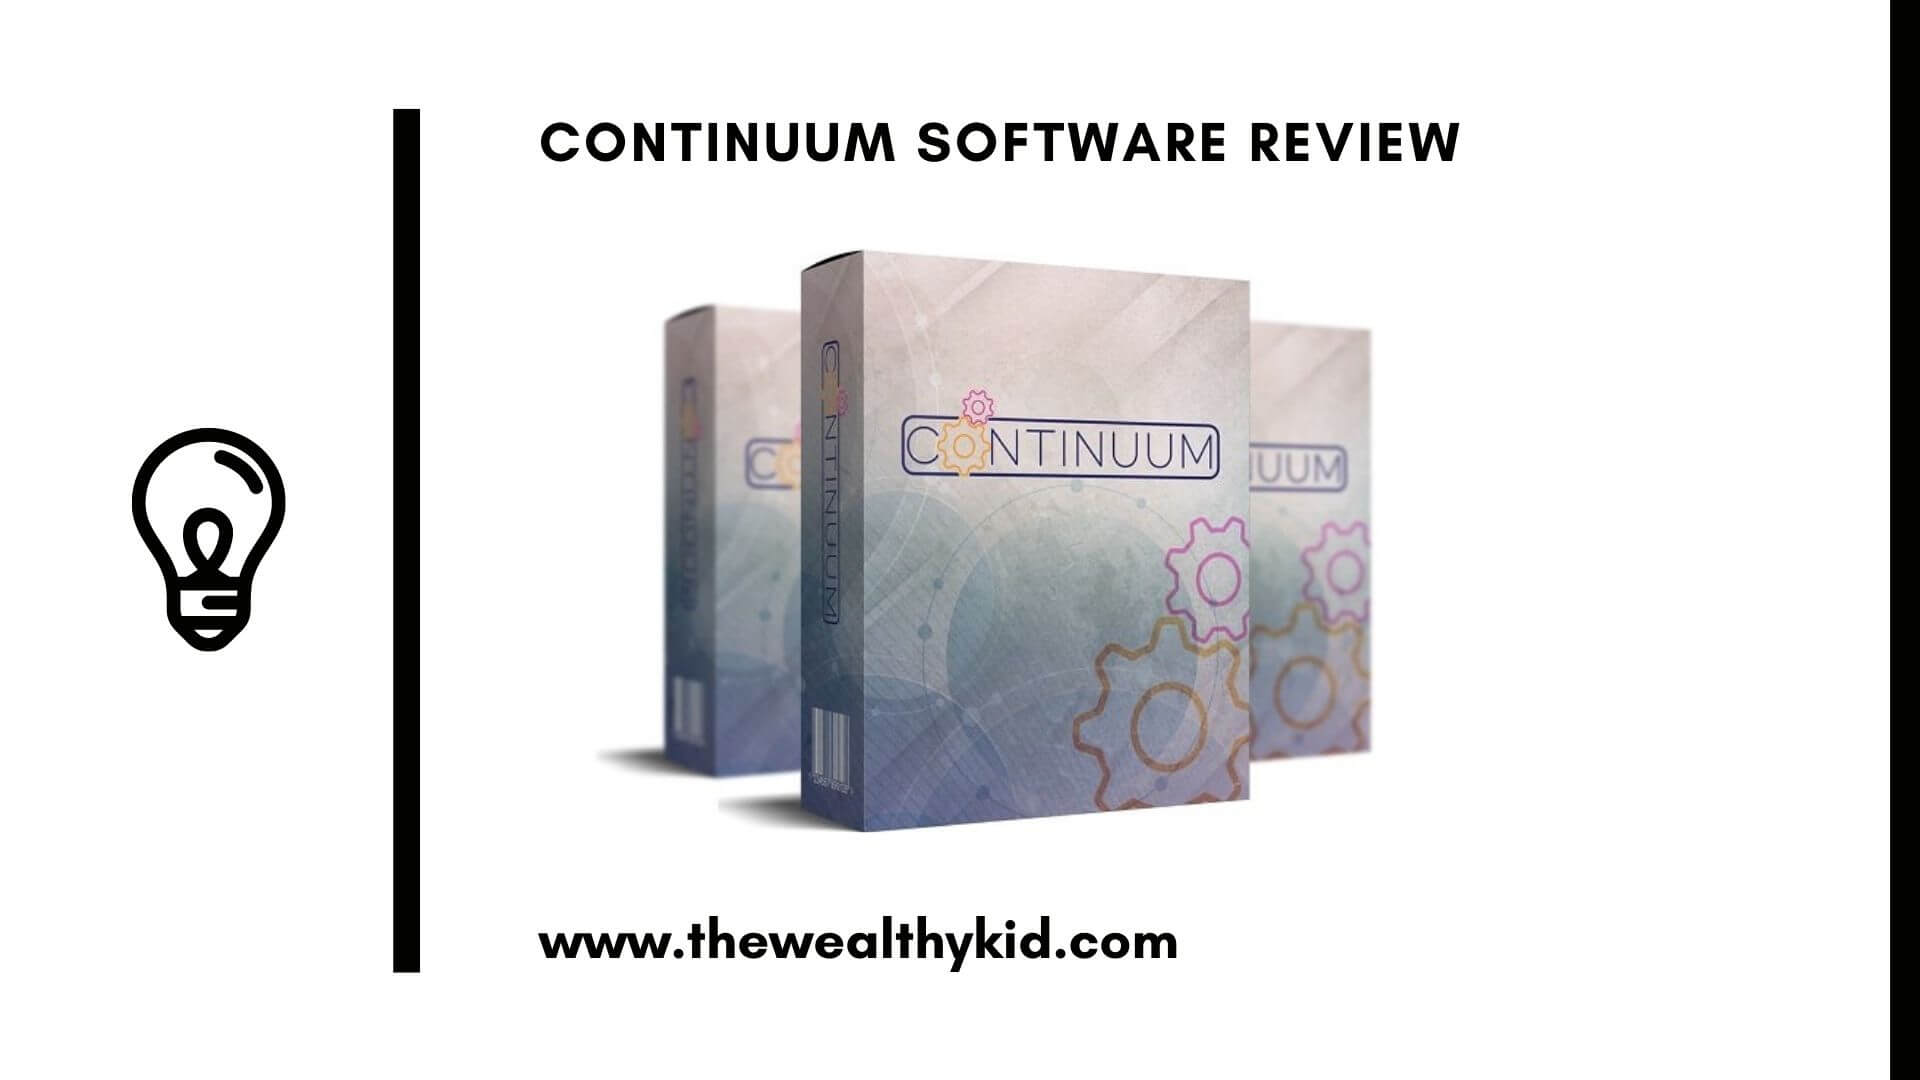 What is Continuum Software